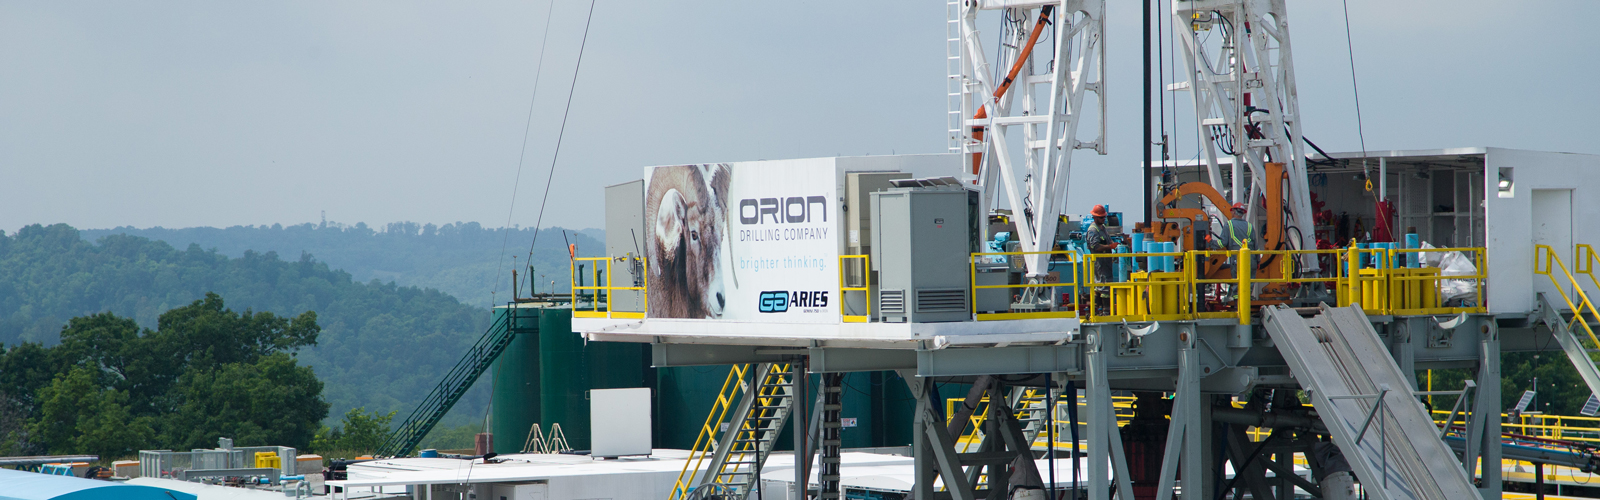 Texas jobs at Orion Drilling Company